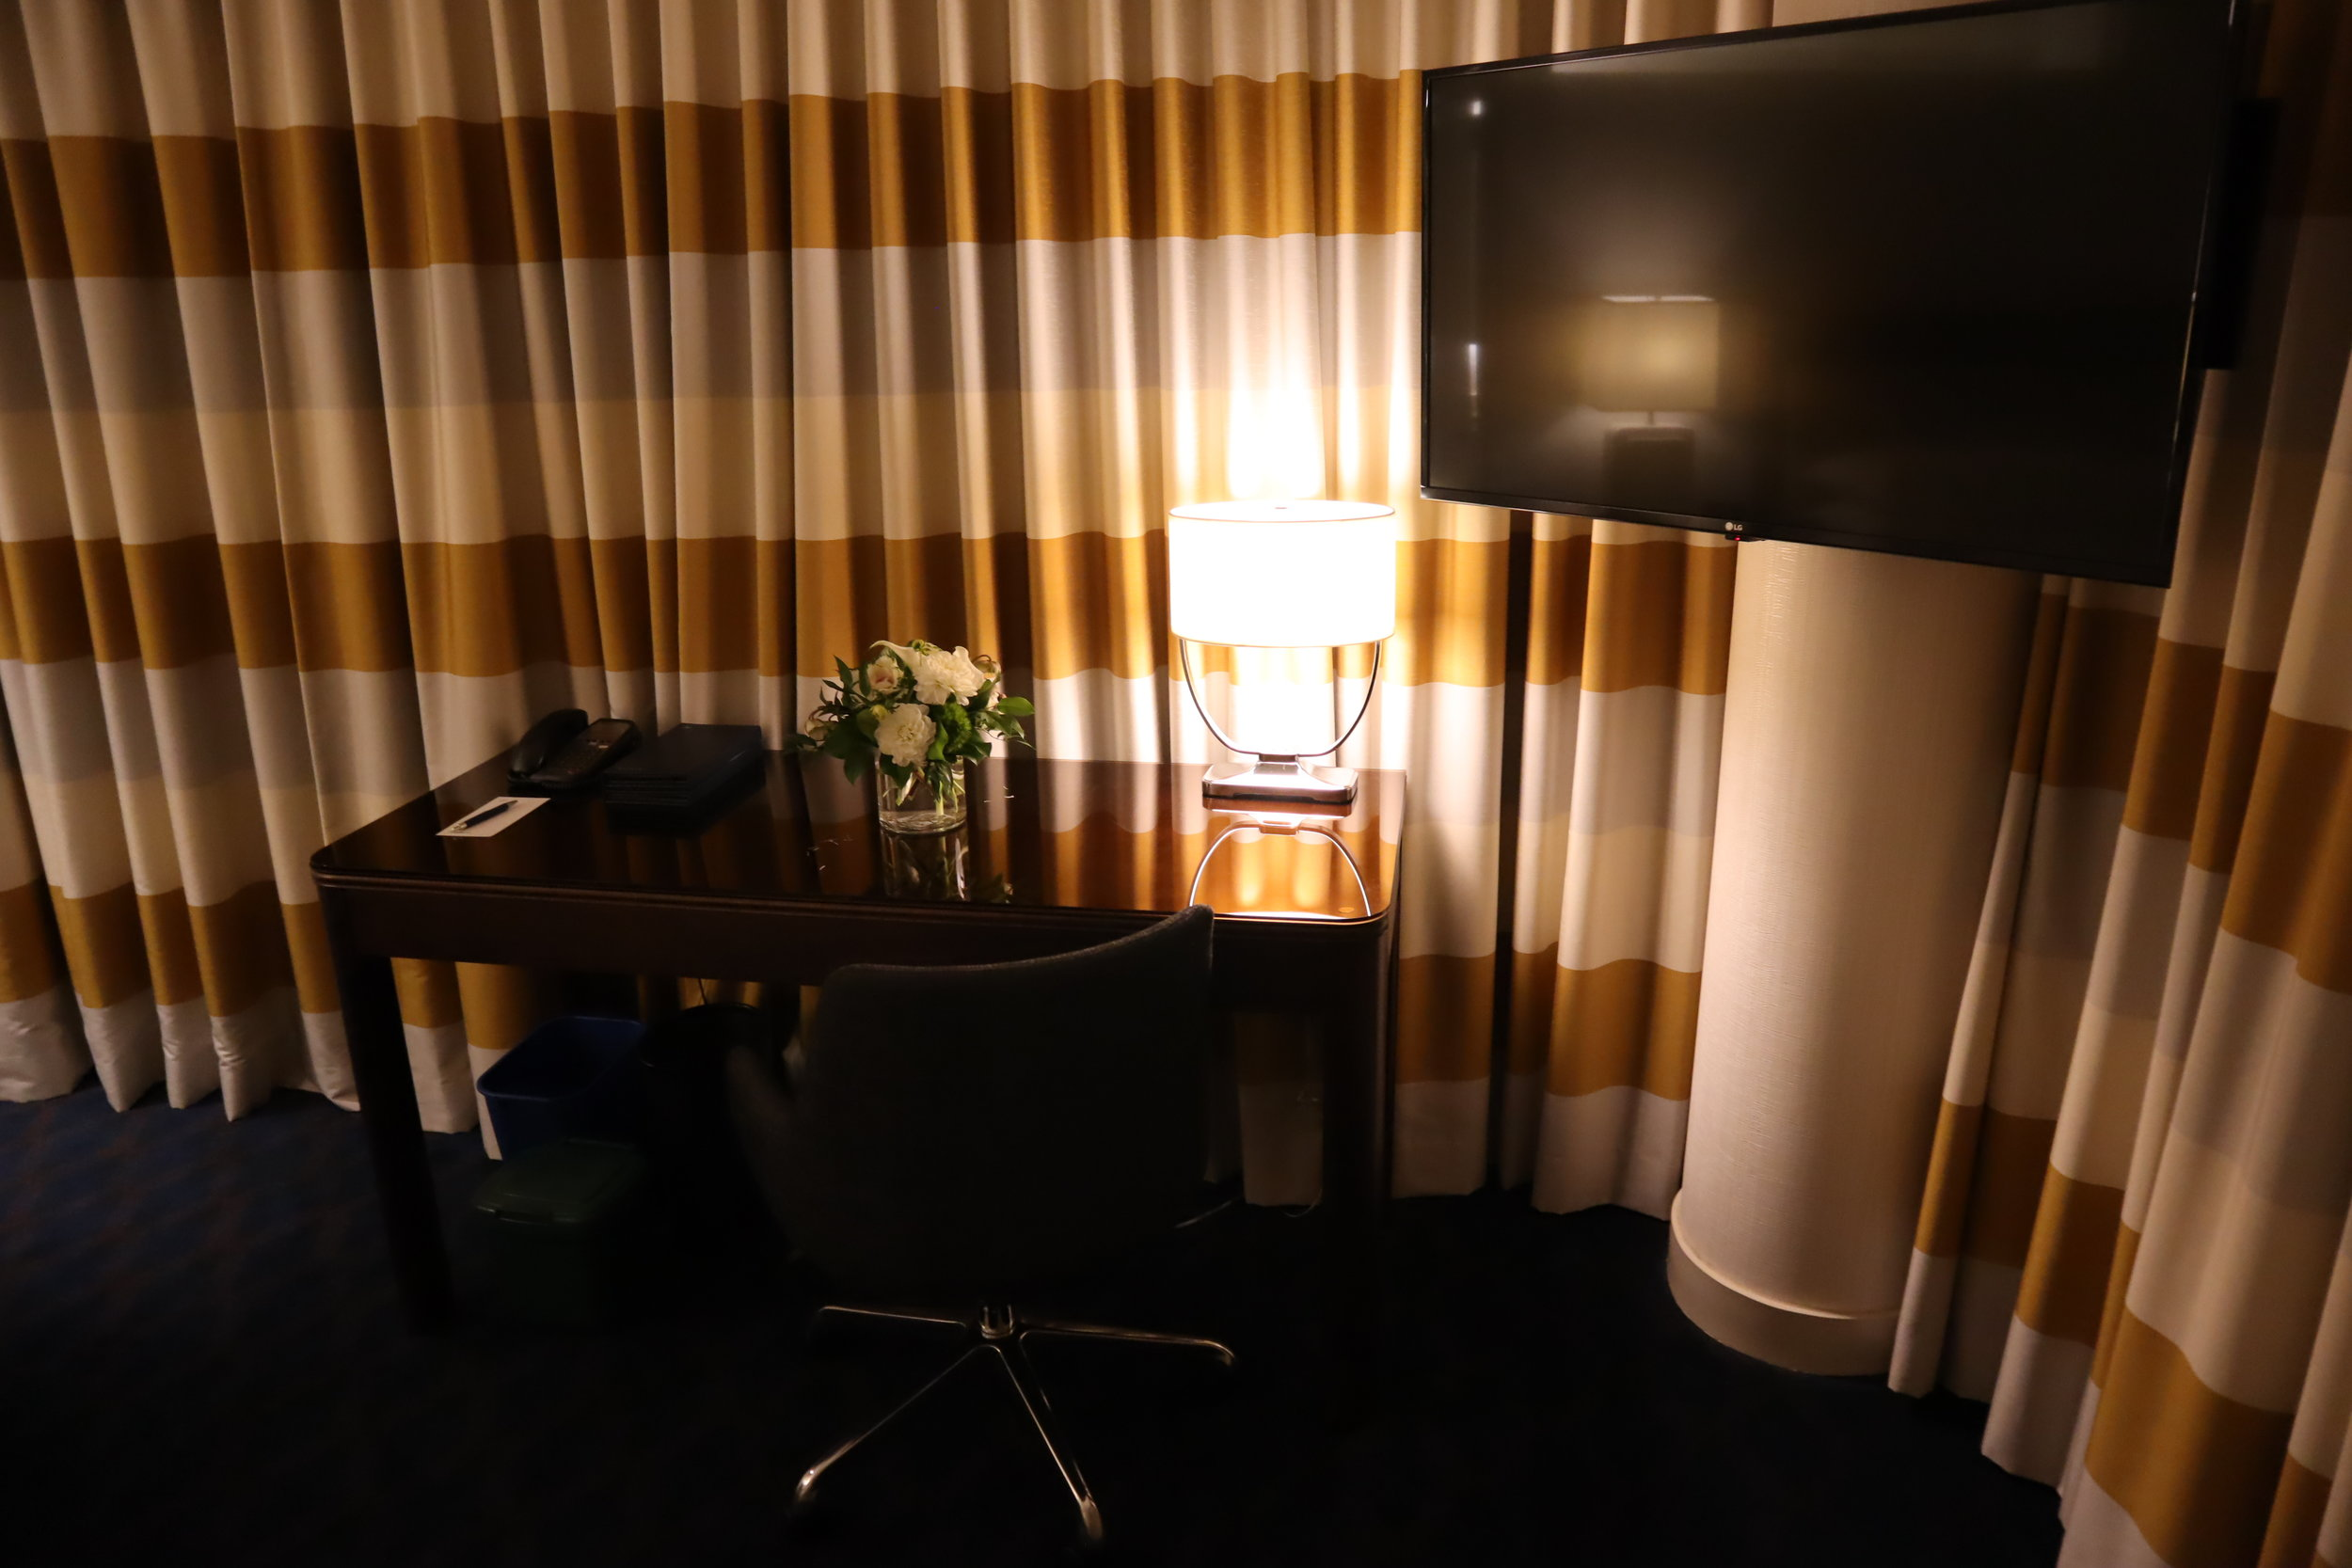 Sheraton Vancouver Wall Centre – Corner suite desk and television